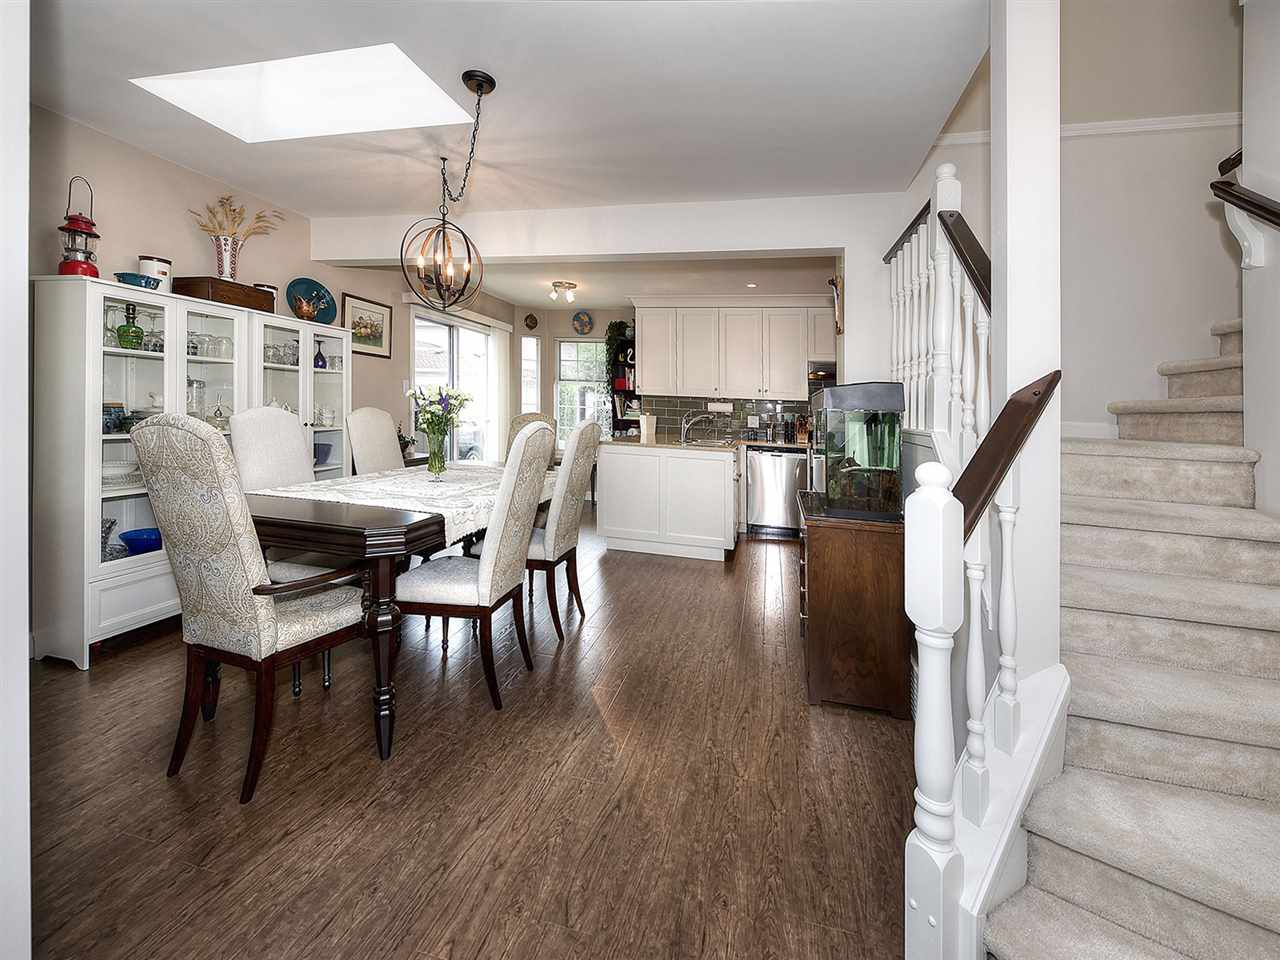 """Main Photo: 13 9168 FLEETWOOD Way in Surrey: Fleetwood Tynehead Townhouse for sale in """"THE FOUNTAINS 2"""" : MLS®# R2194406"""